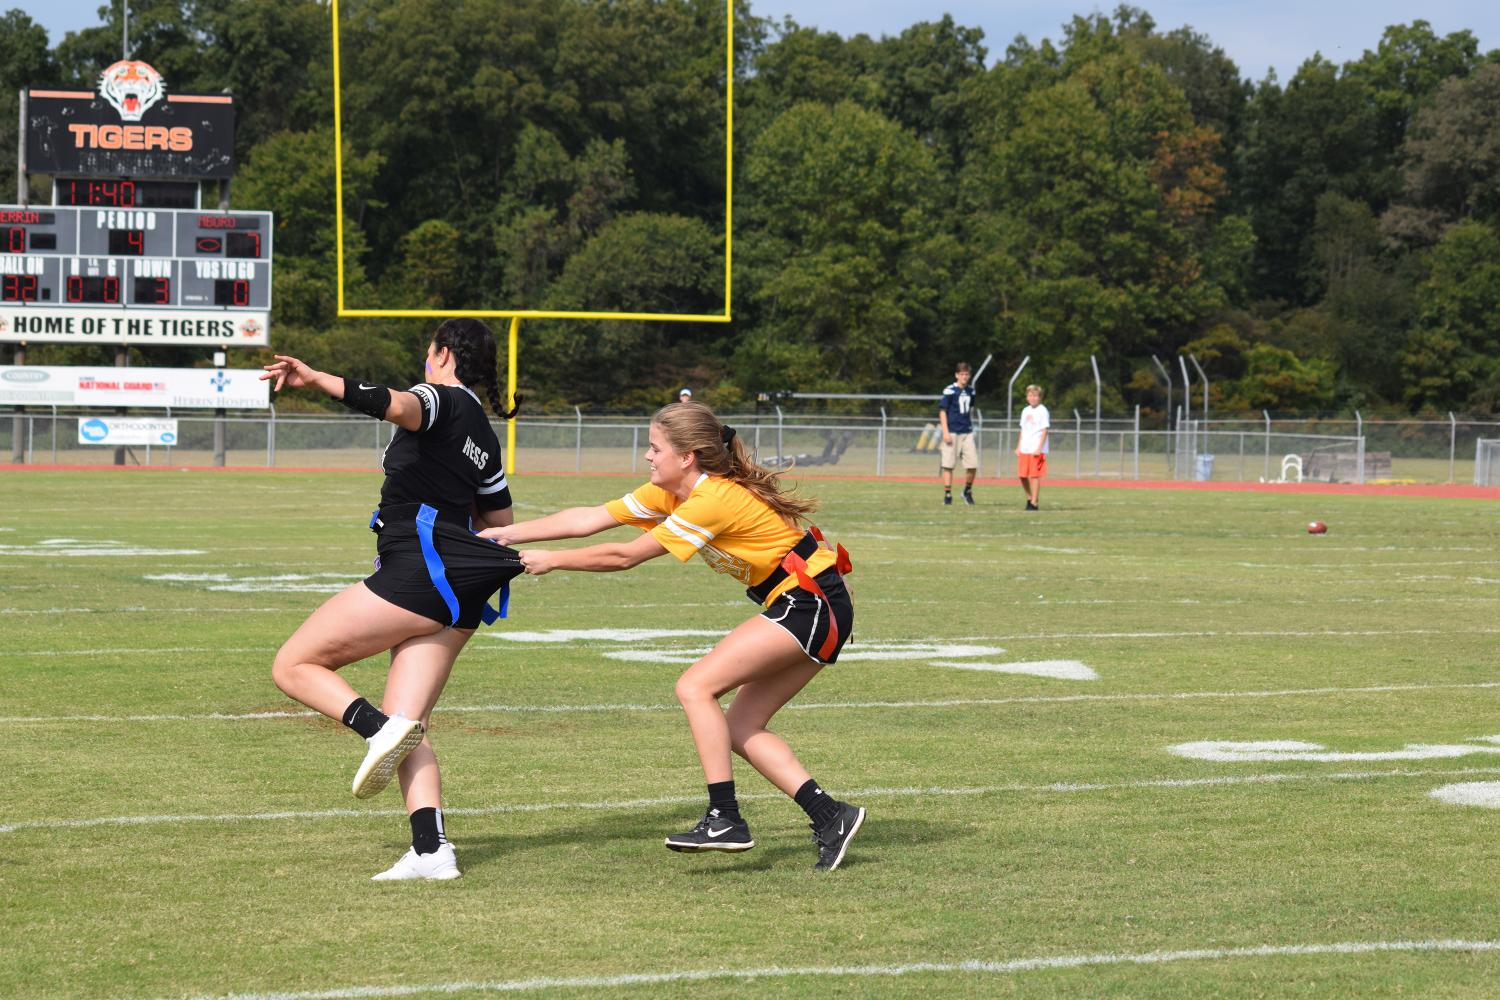 Cheyenne Hess (12) runs the ball while avoiding the grasps of Ashley Owens (11) during the powder puff game.